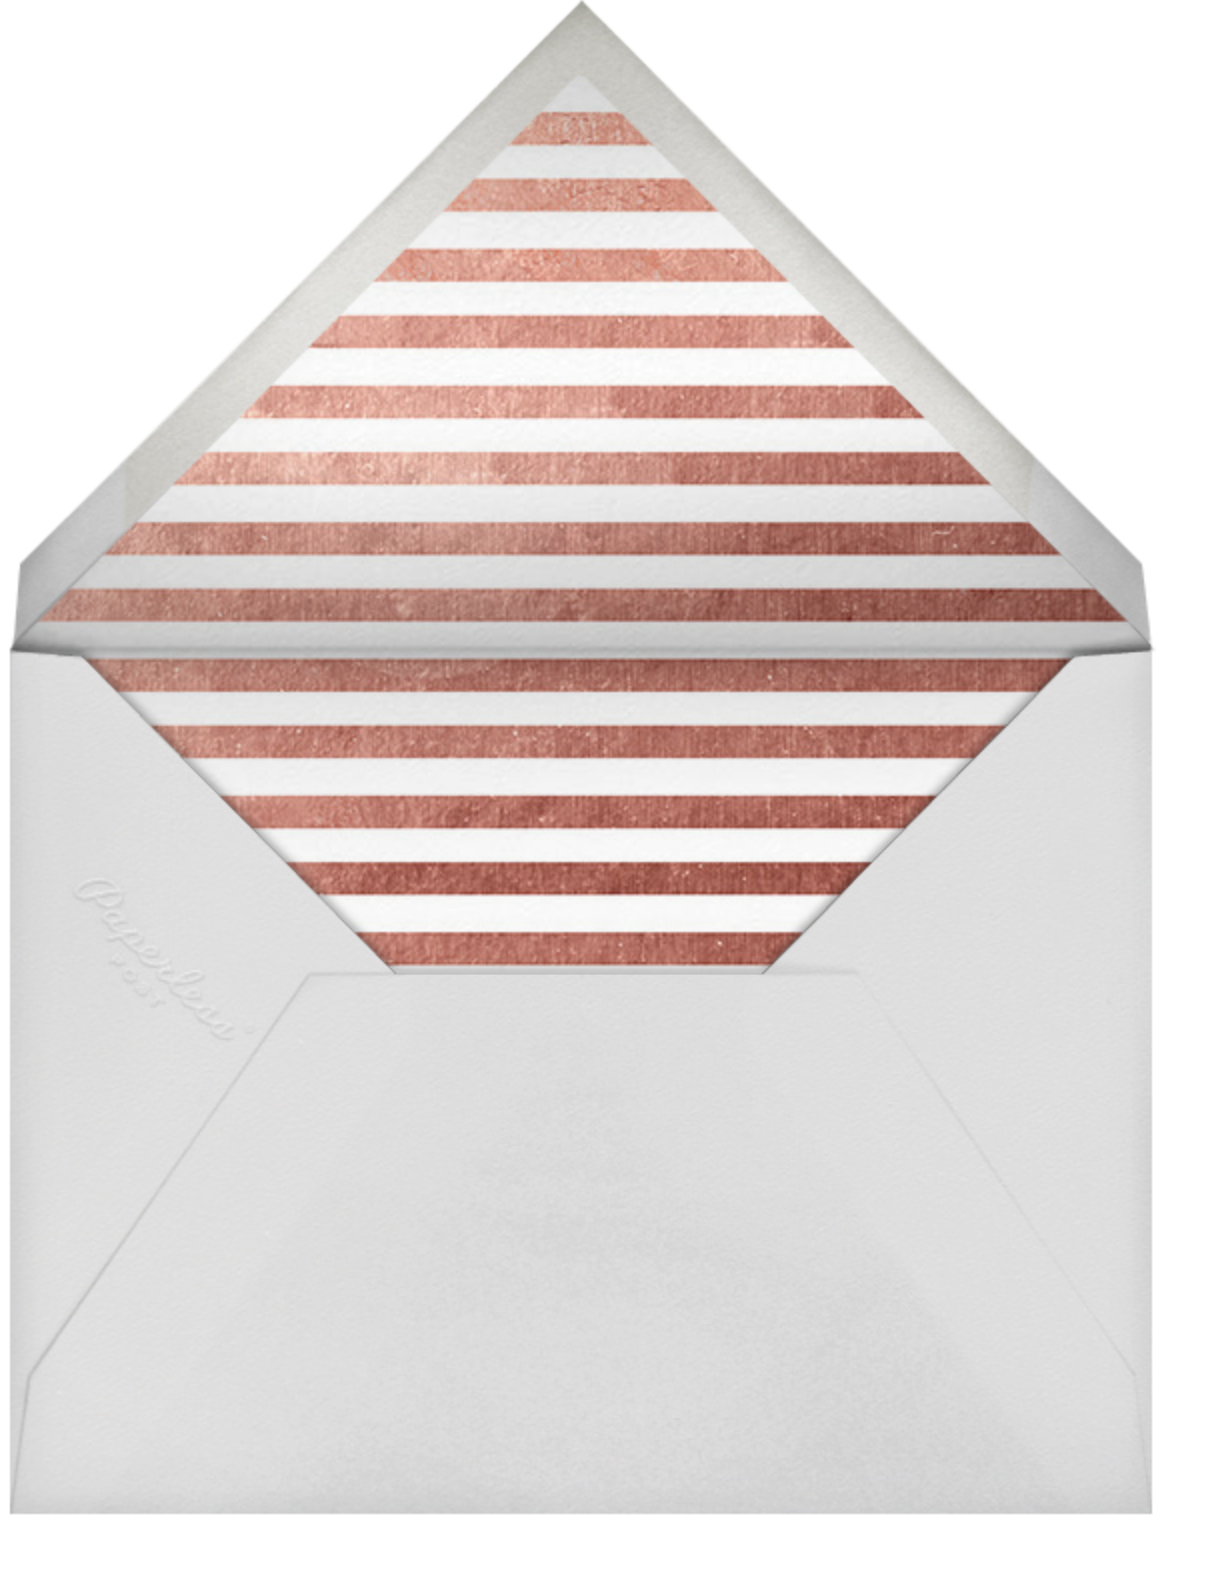 Confetti (Stationery) - White/Rose Gold - kate spade new york - General - envelope back